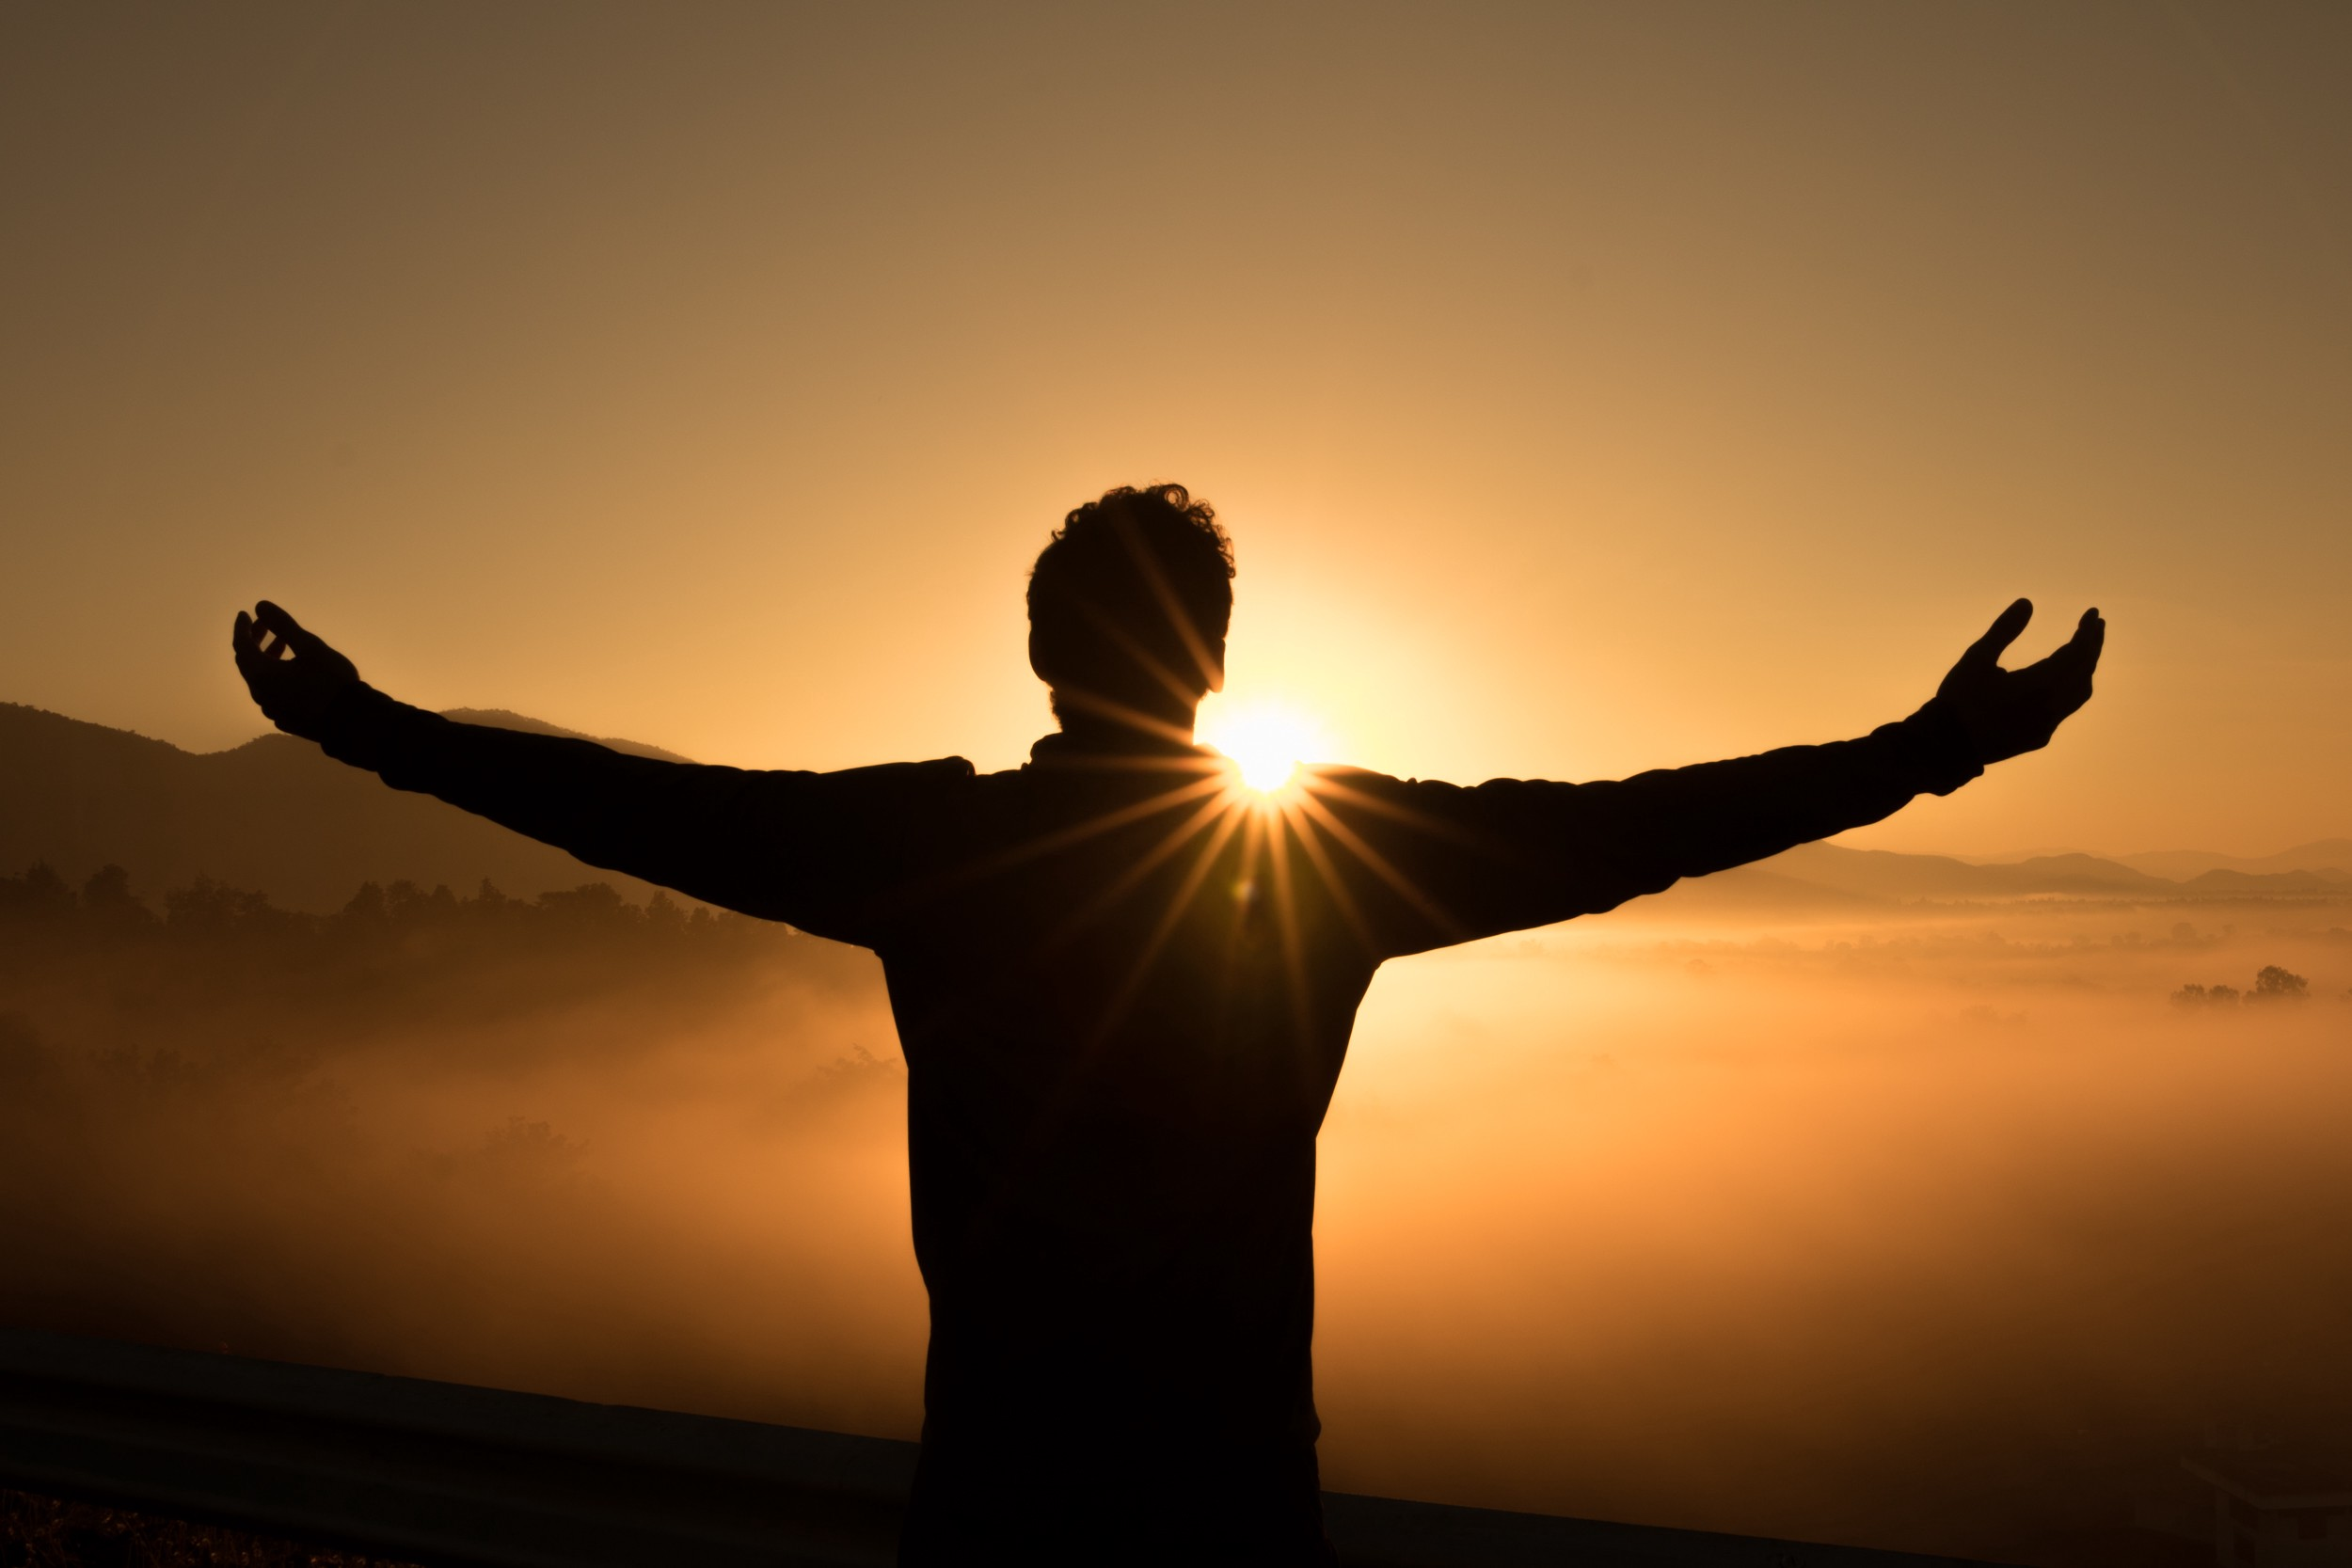 A silhouette of a man in the shape of a cross standing with arms reaching out while facing a golden sunrise